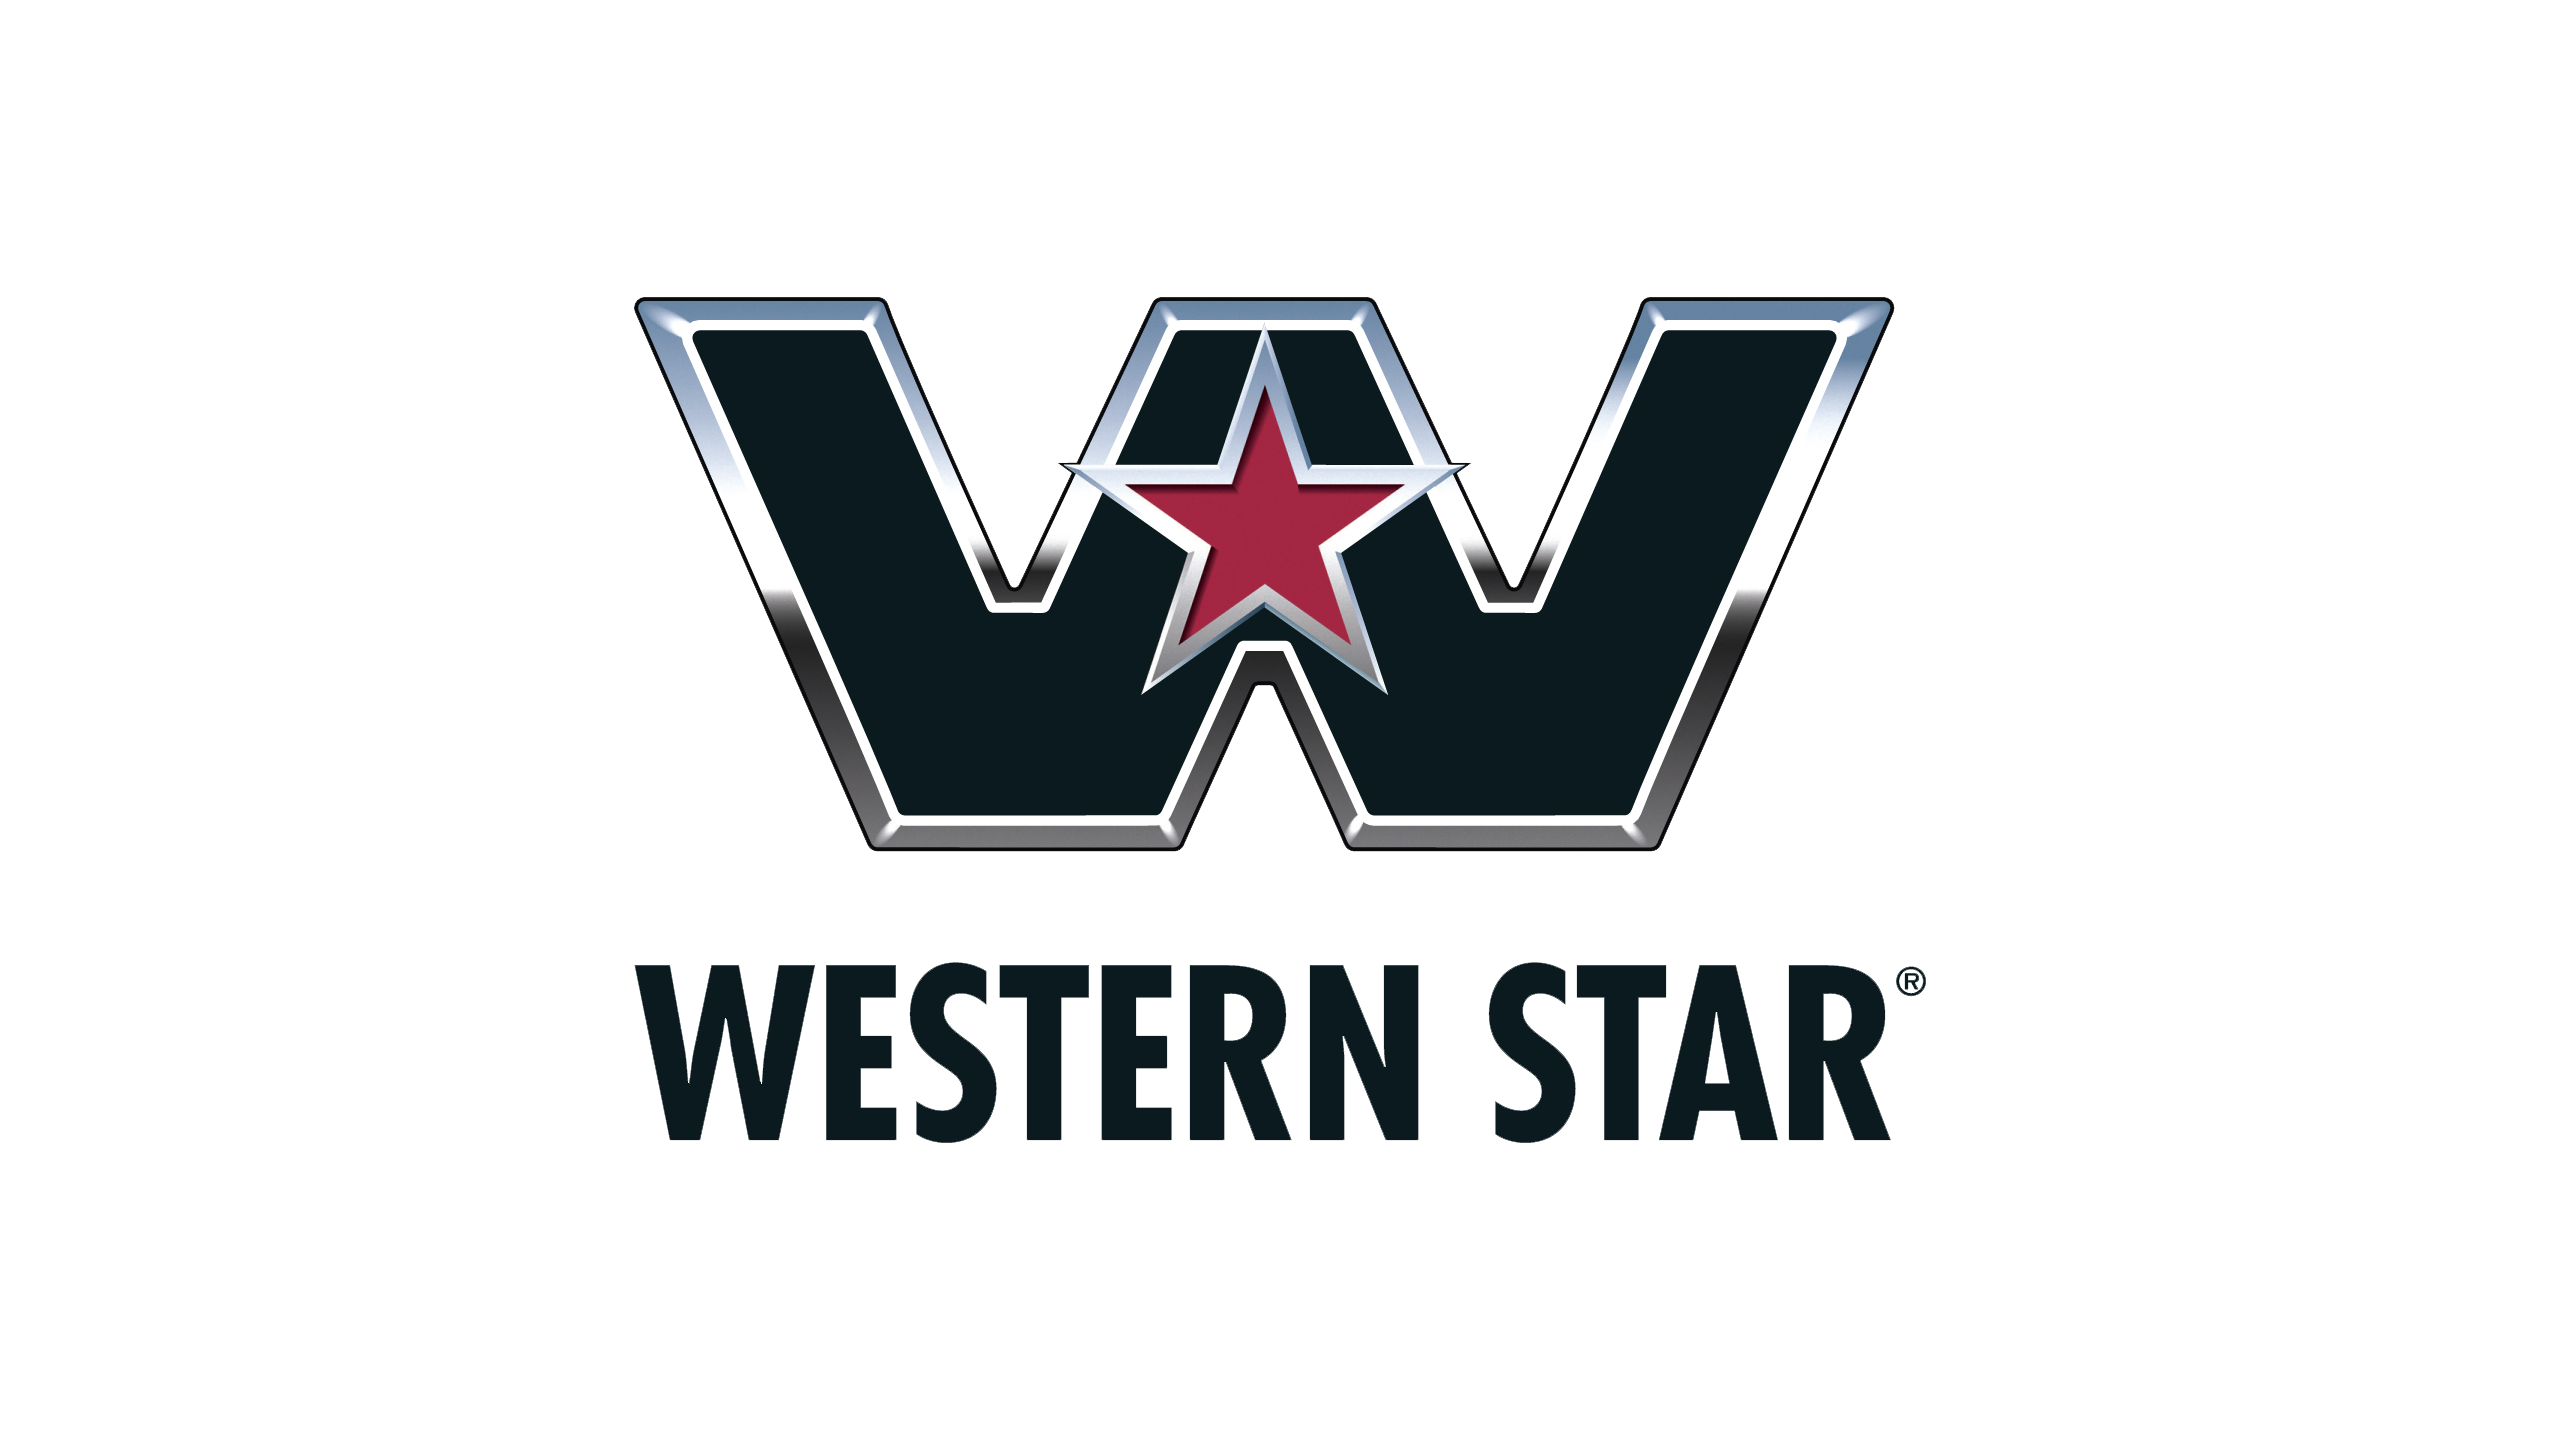 Western star line clipart png transparent library Western Logos png transparent library